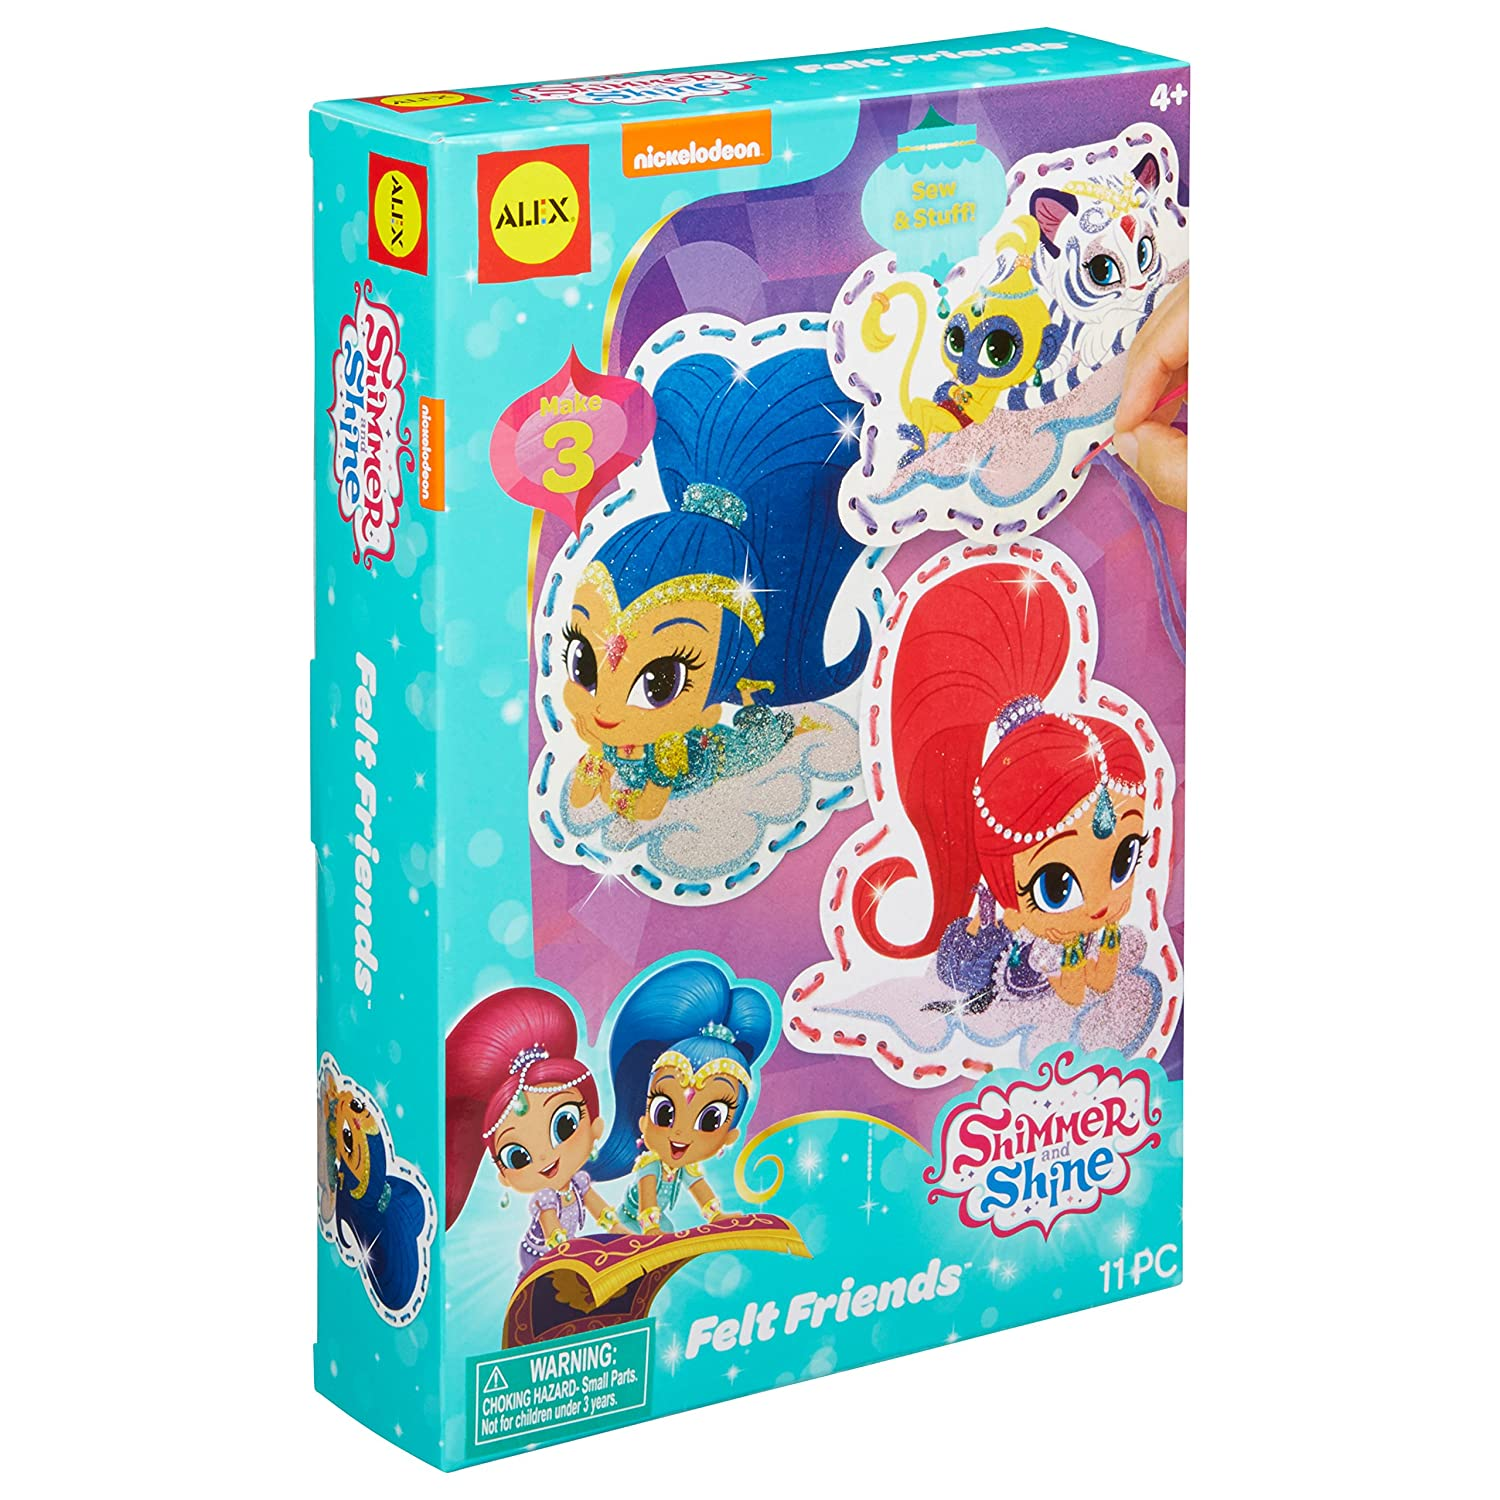 Shimmer and Shine Felt Friends Craft Activity